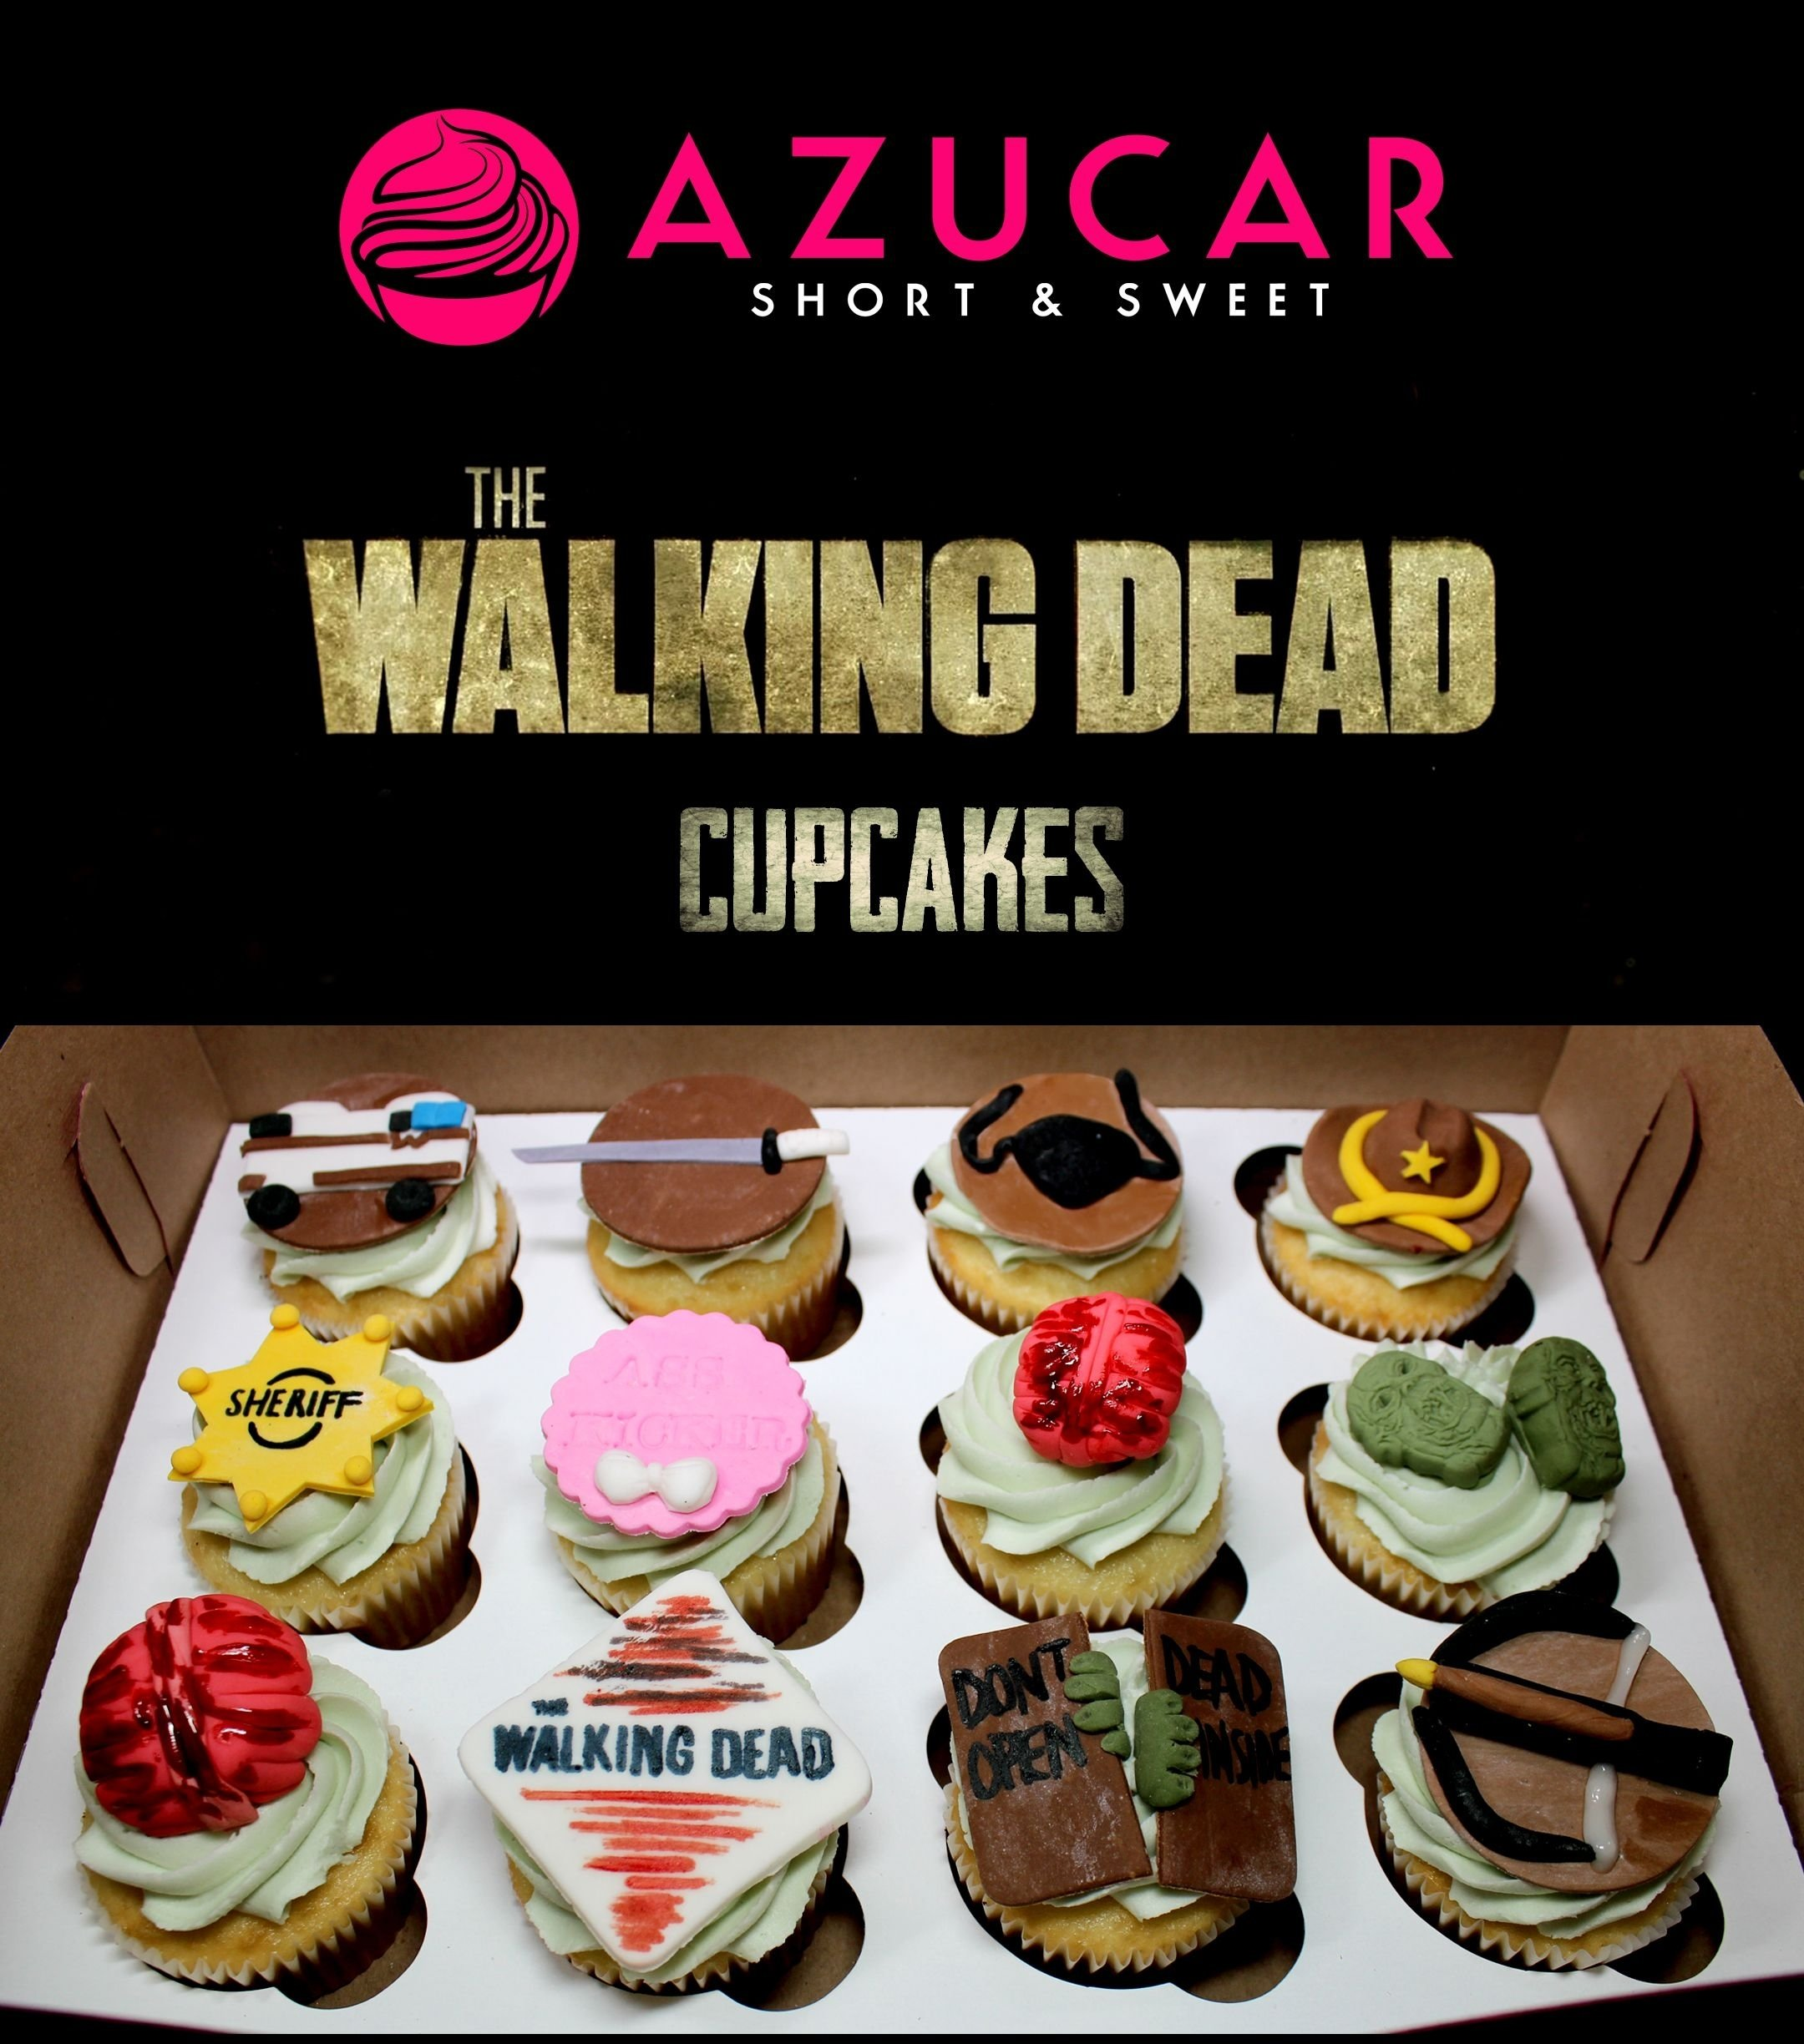 the walking dead cupcakes a perfect b-day gift to myself to start